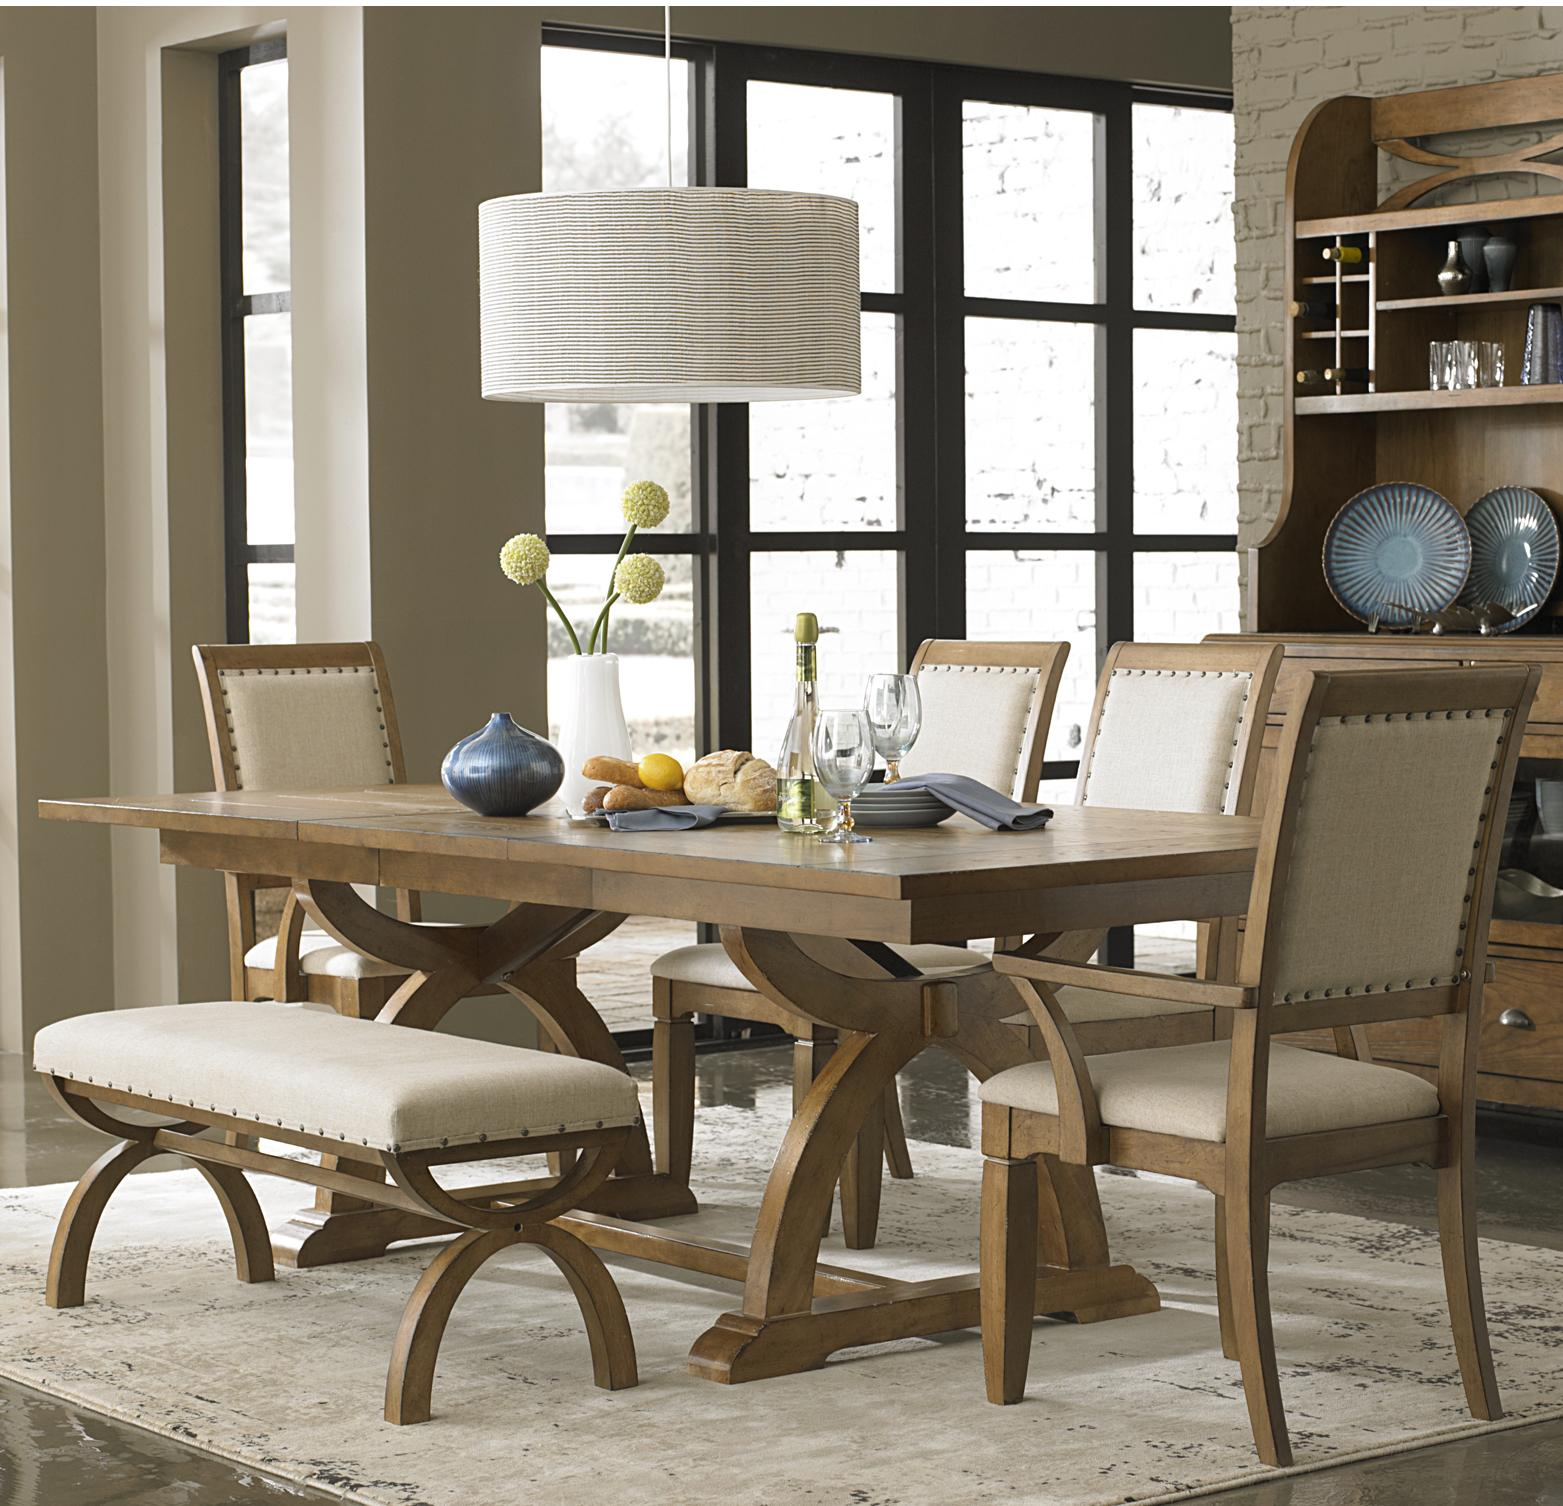 Modern dining room sets with bench 6 piece trestle table set with 4 upholstered chairs u0026 dining bench jgansin